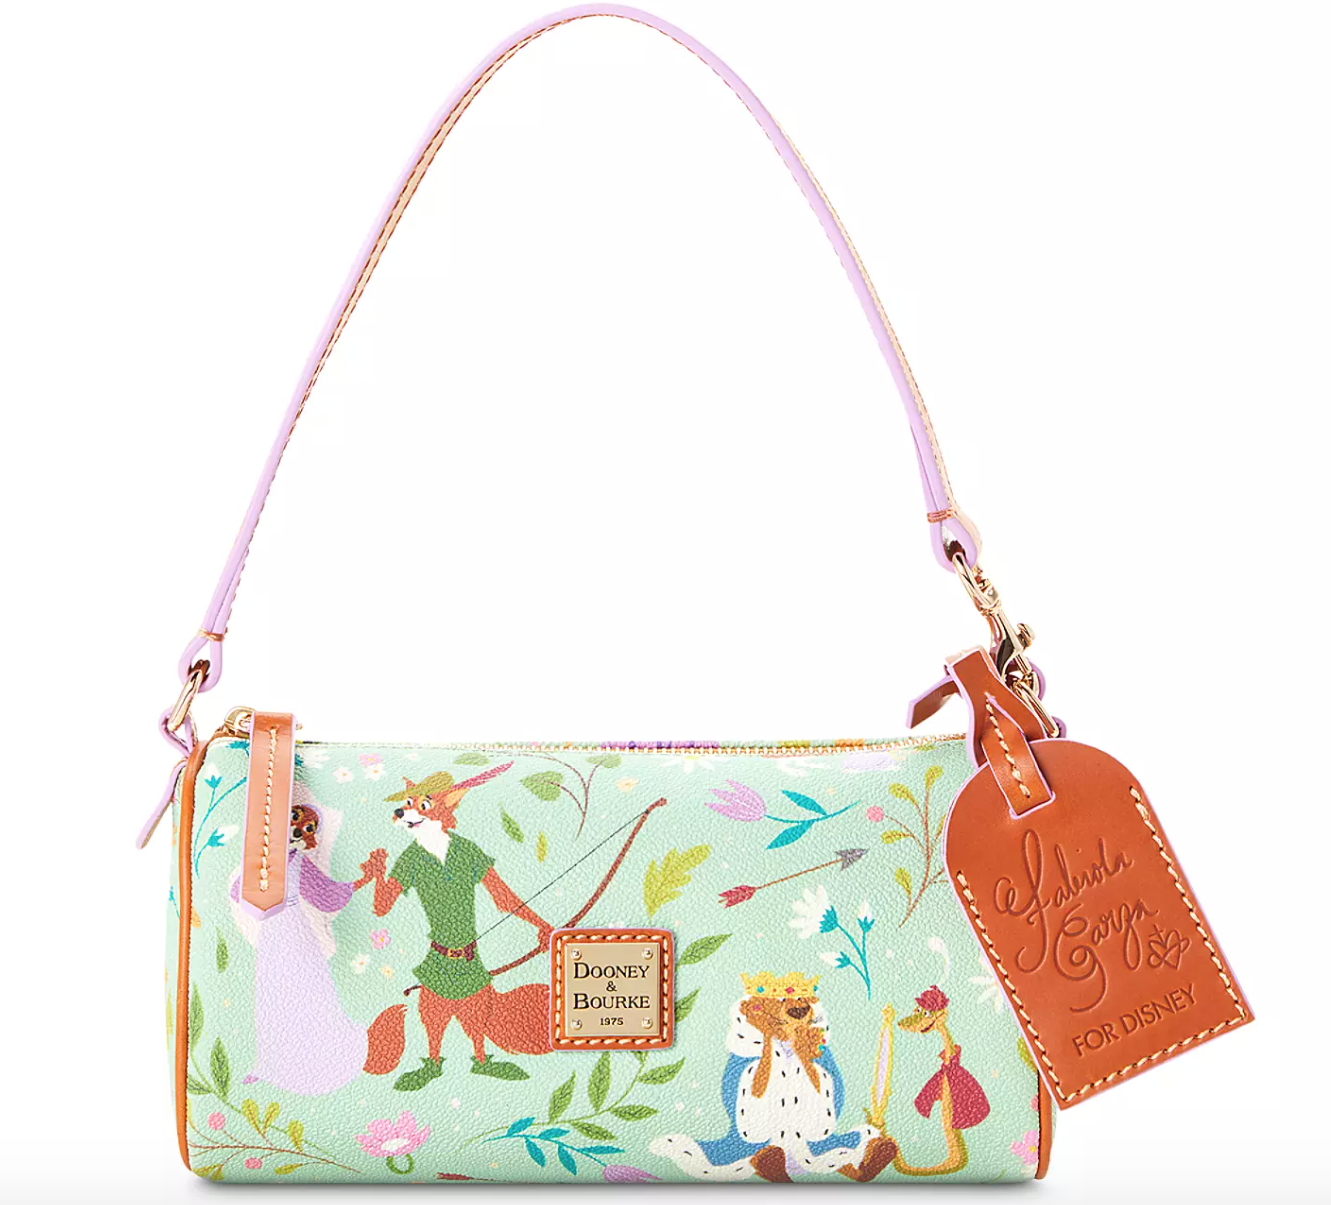 Robin Hood Disney Dooney and Bourke Bag 2021